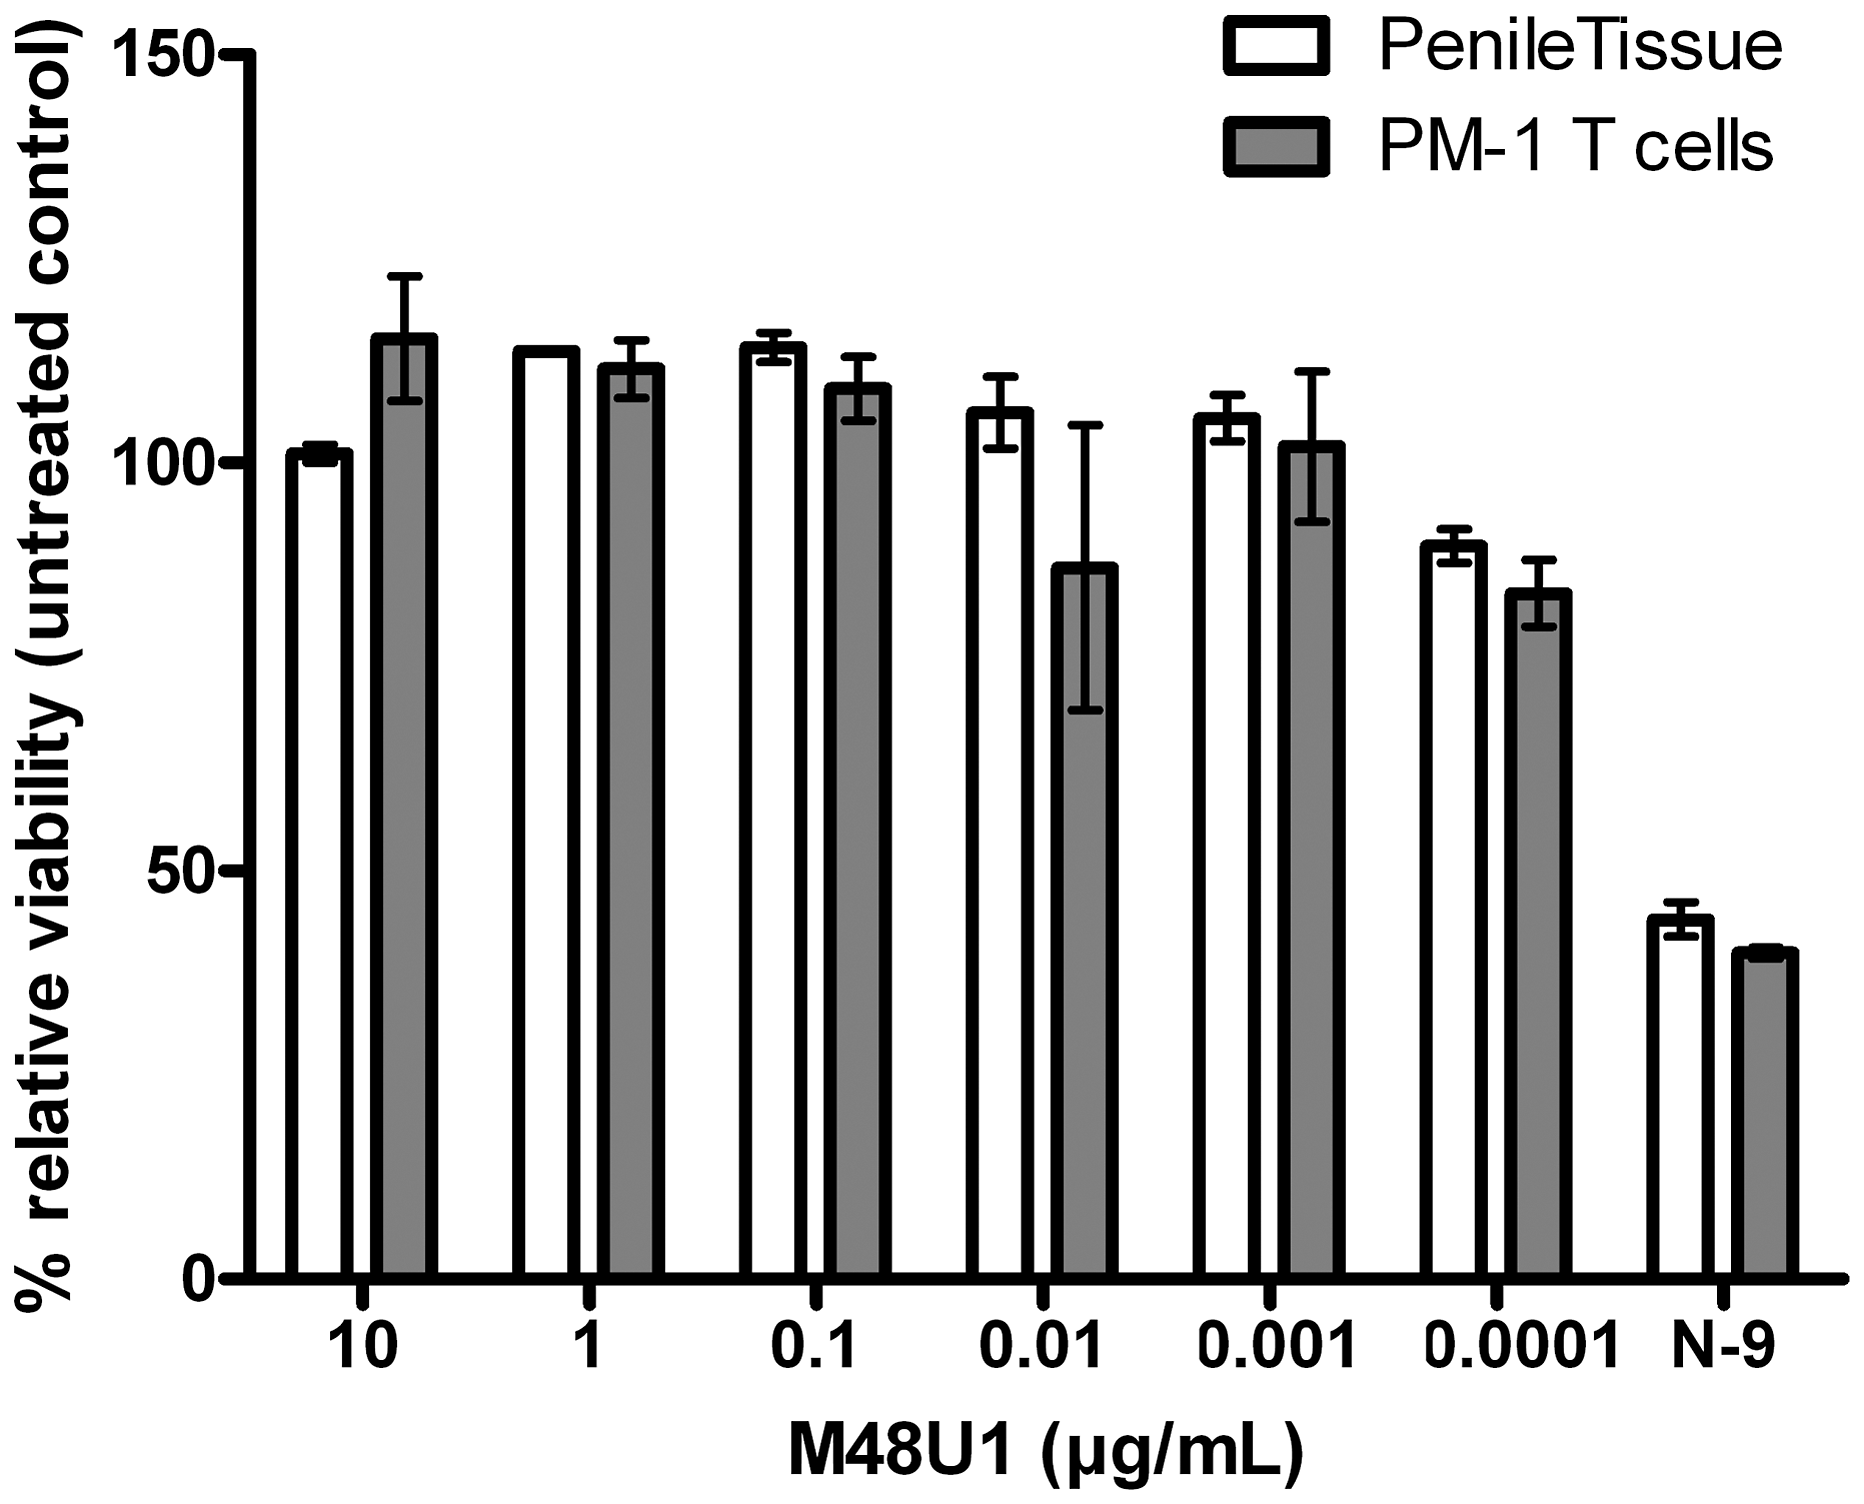 Viability assay to evaluate the cytotoxicity of M48U1 on mucosal tissue explants and PM-1 T cells.